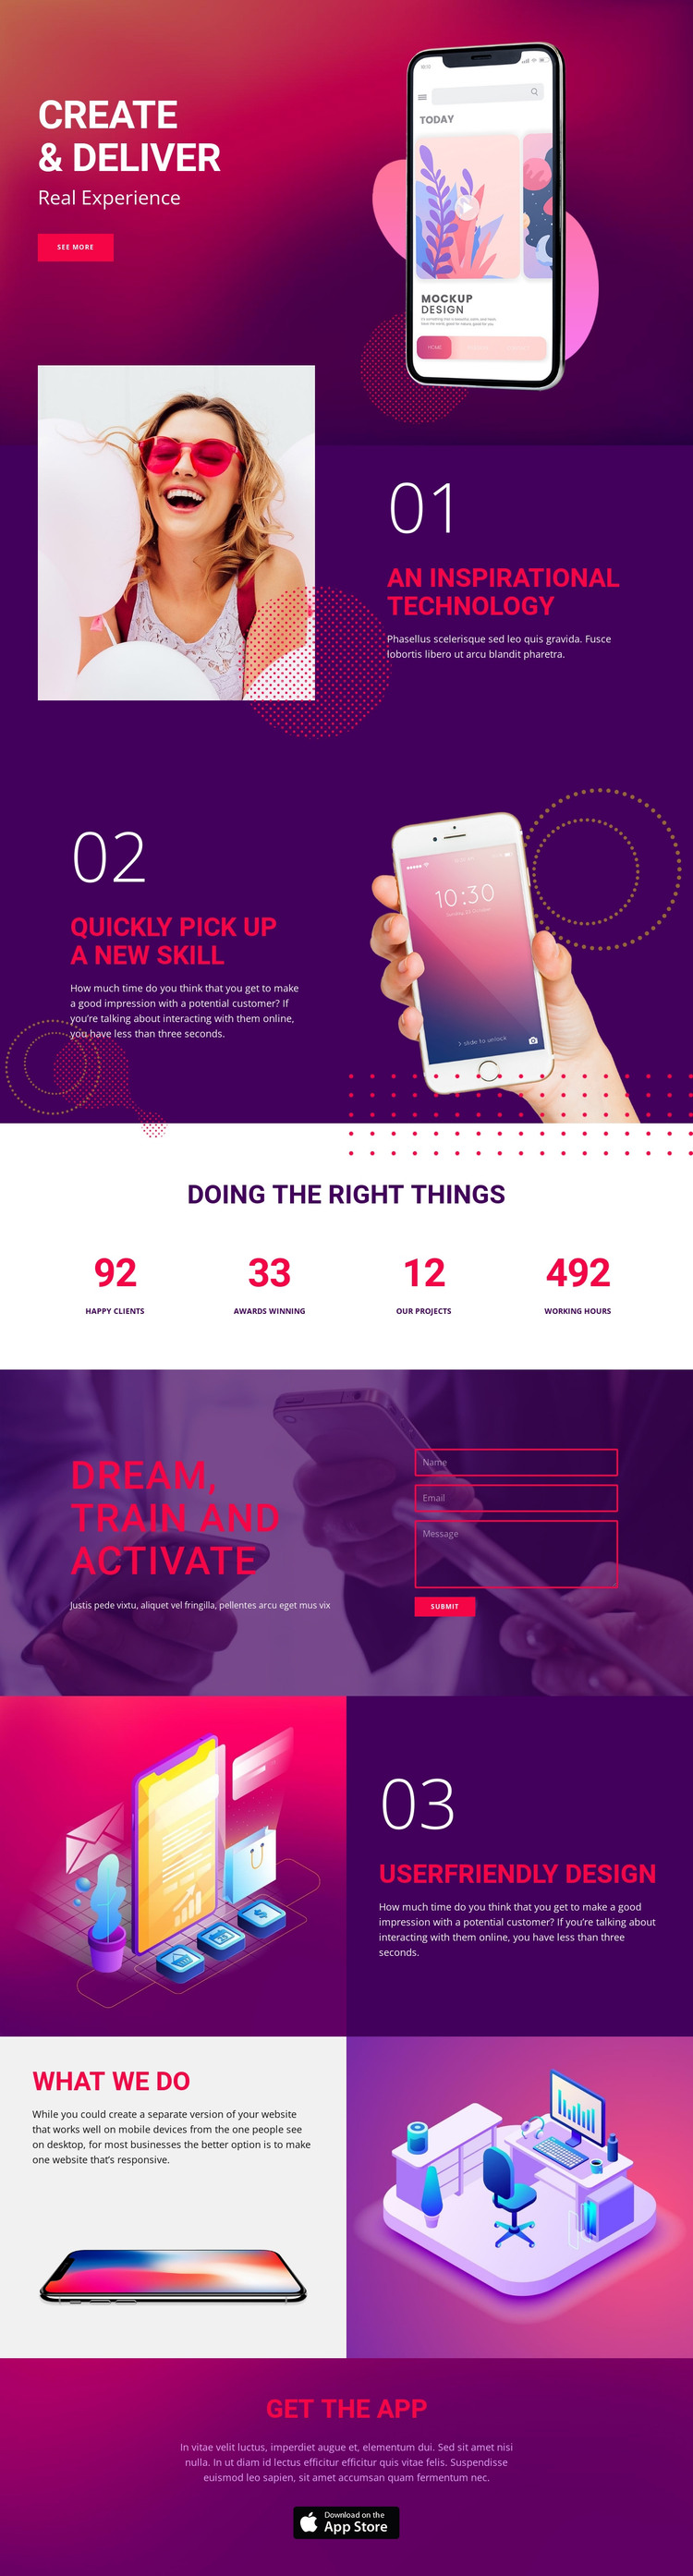 Delivery technology HTML Template